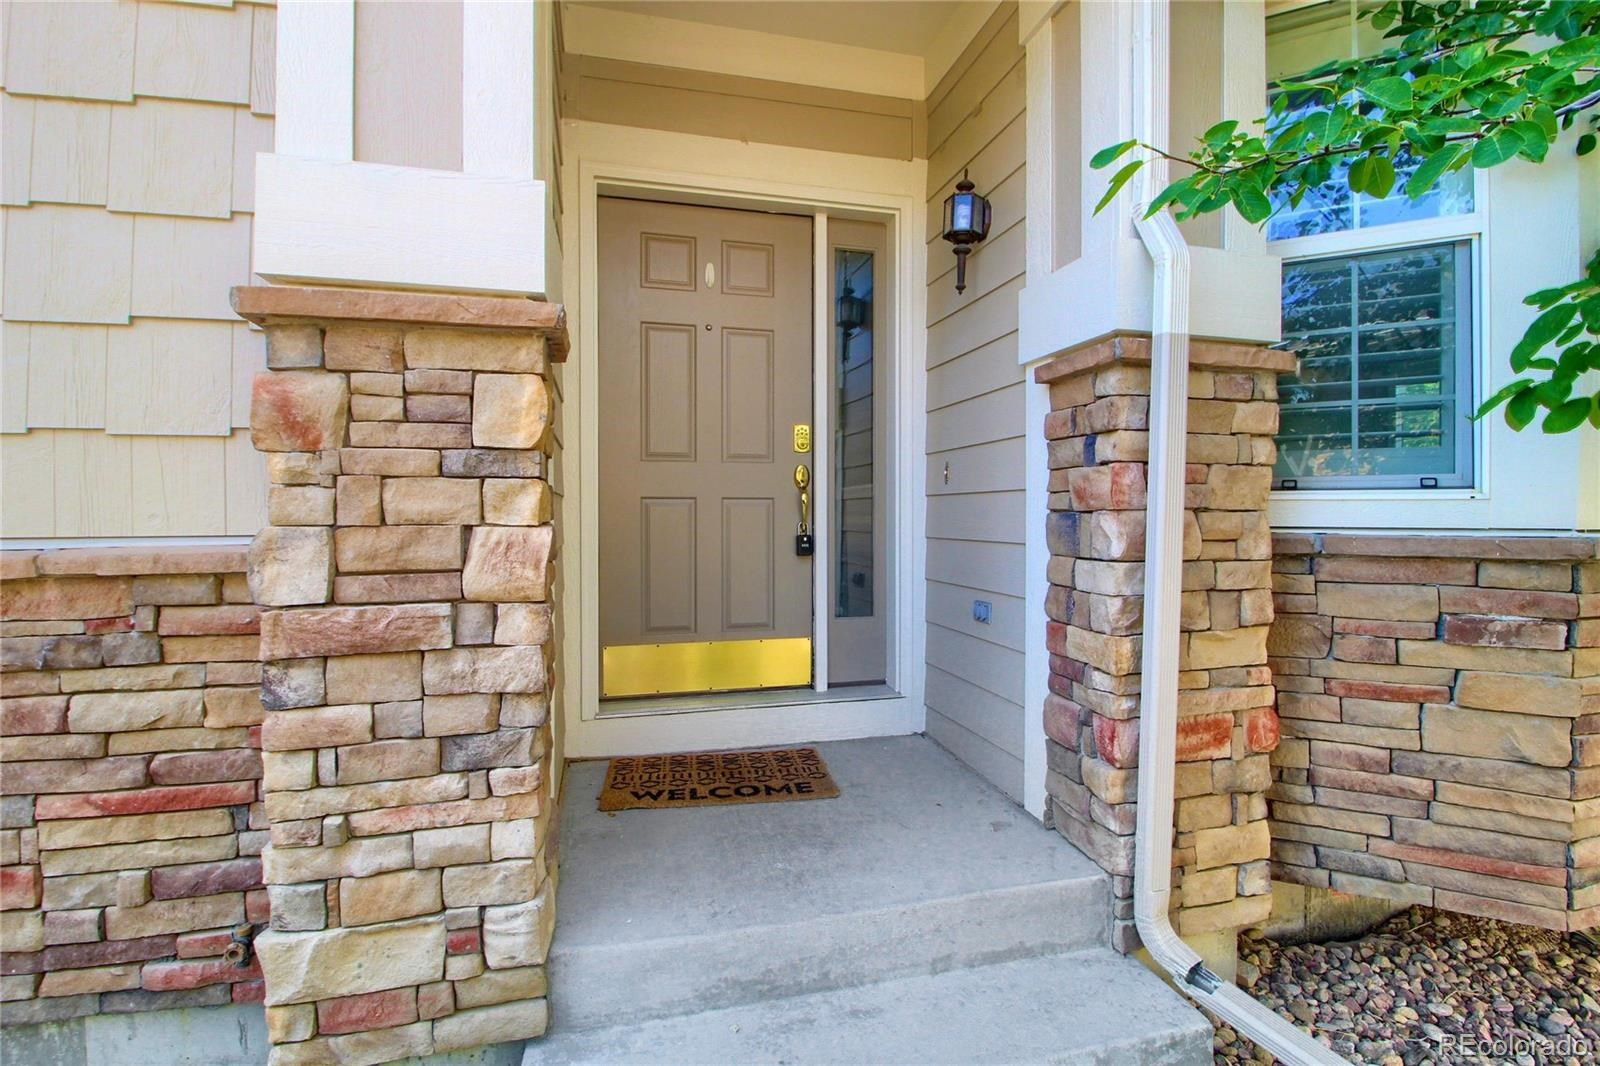 MLS# 8597792 - 2 - 13787 Stone Circle #101, Broomfield, CO 80023